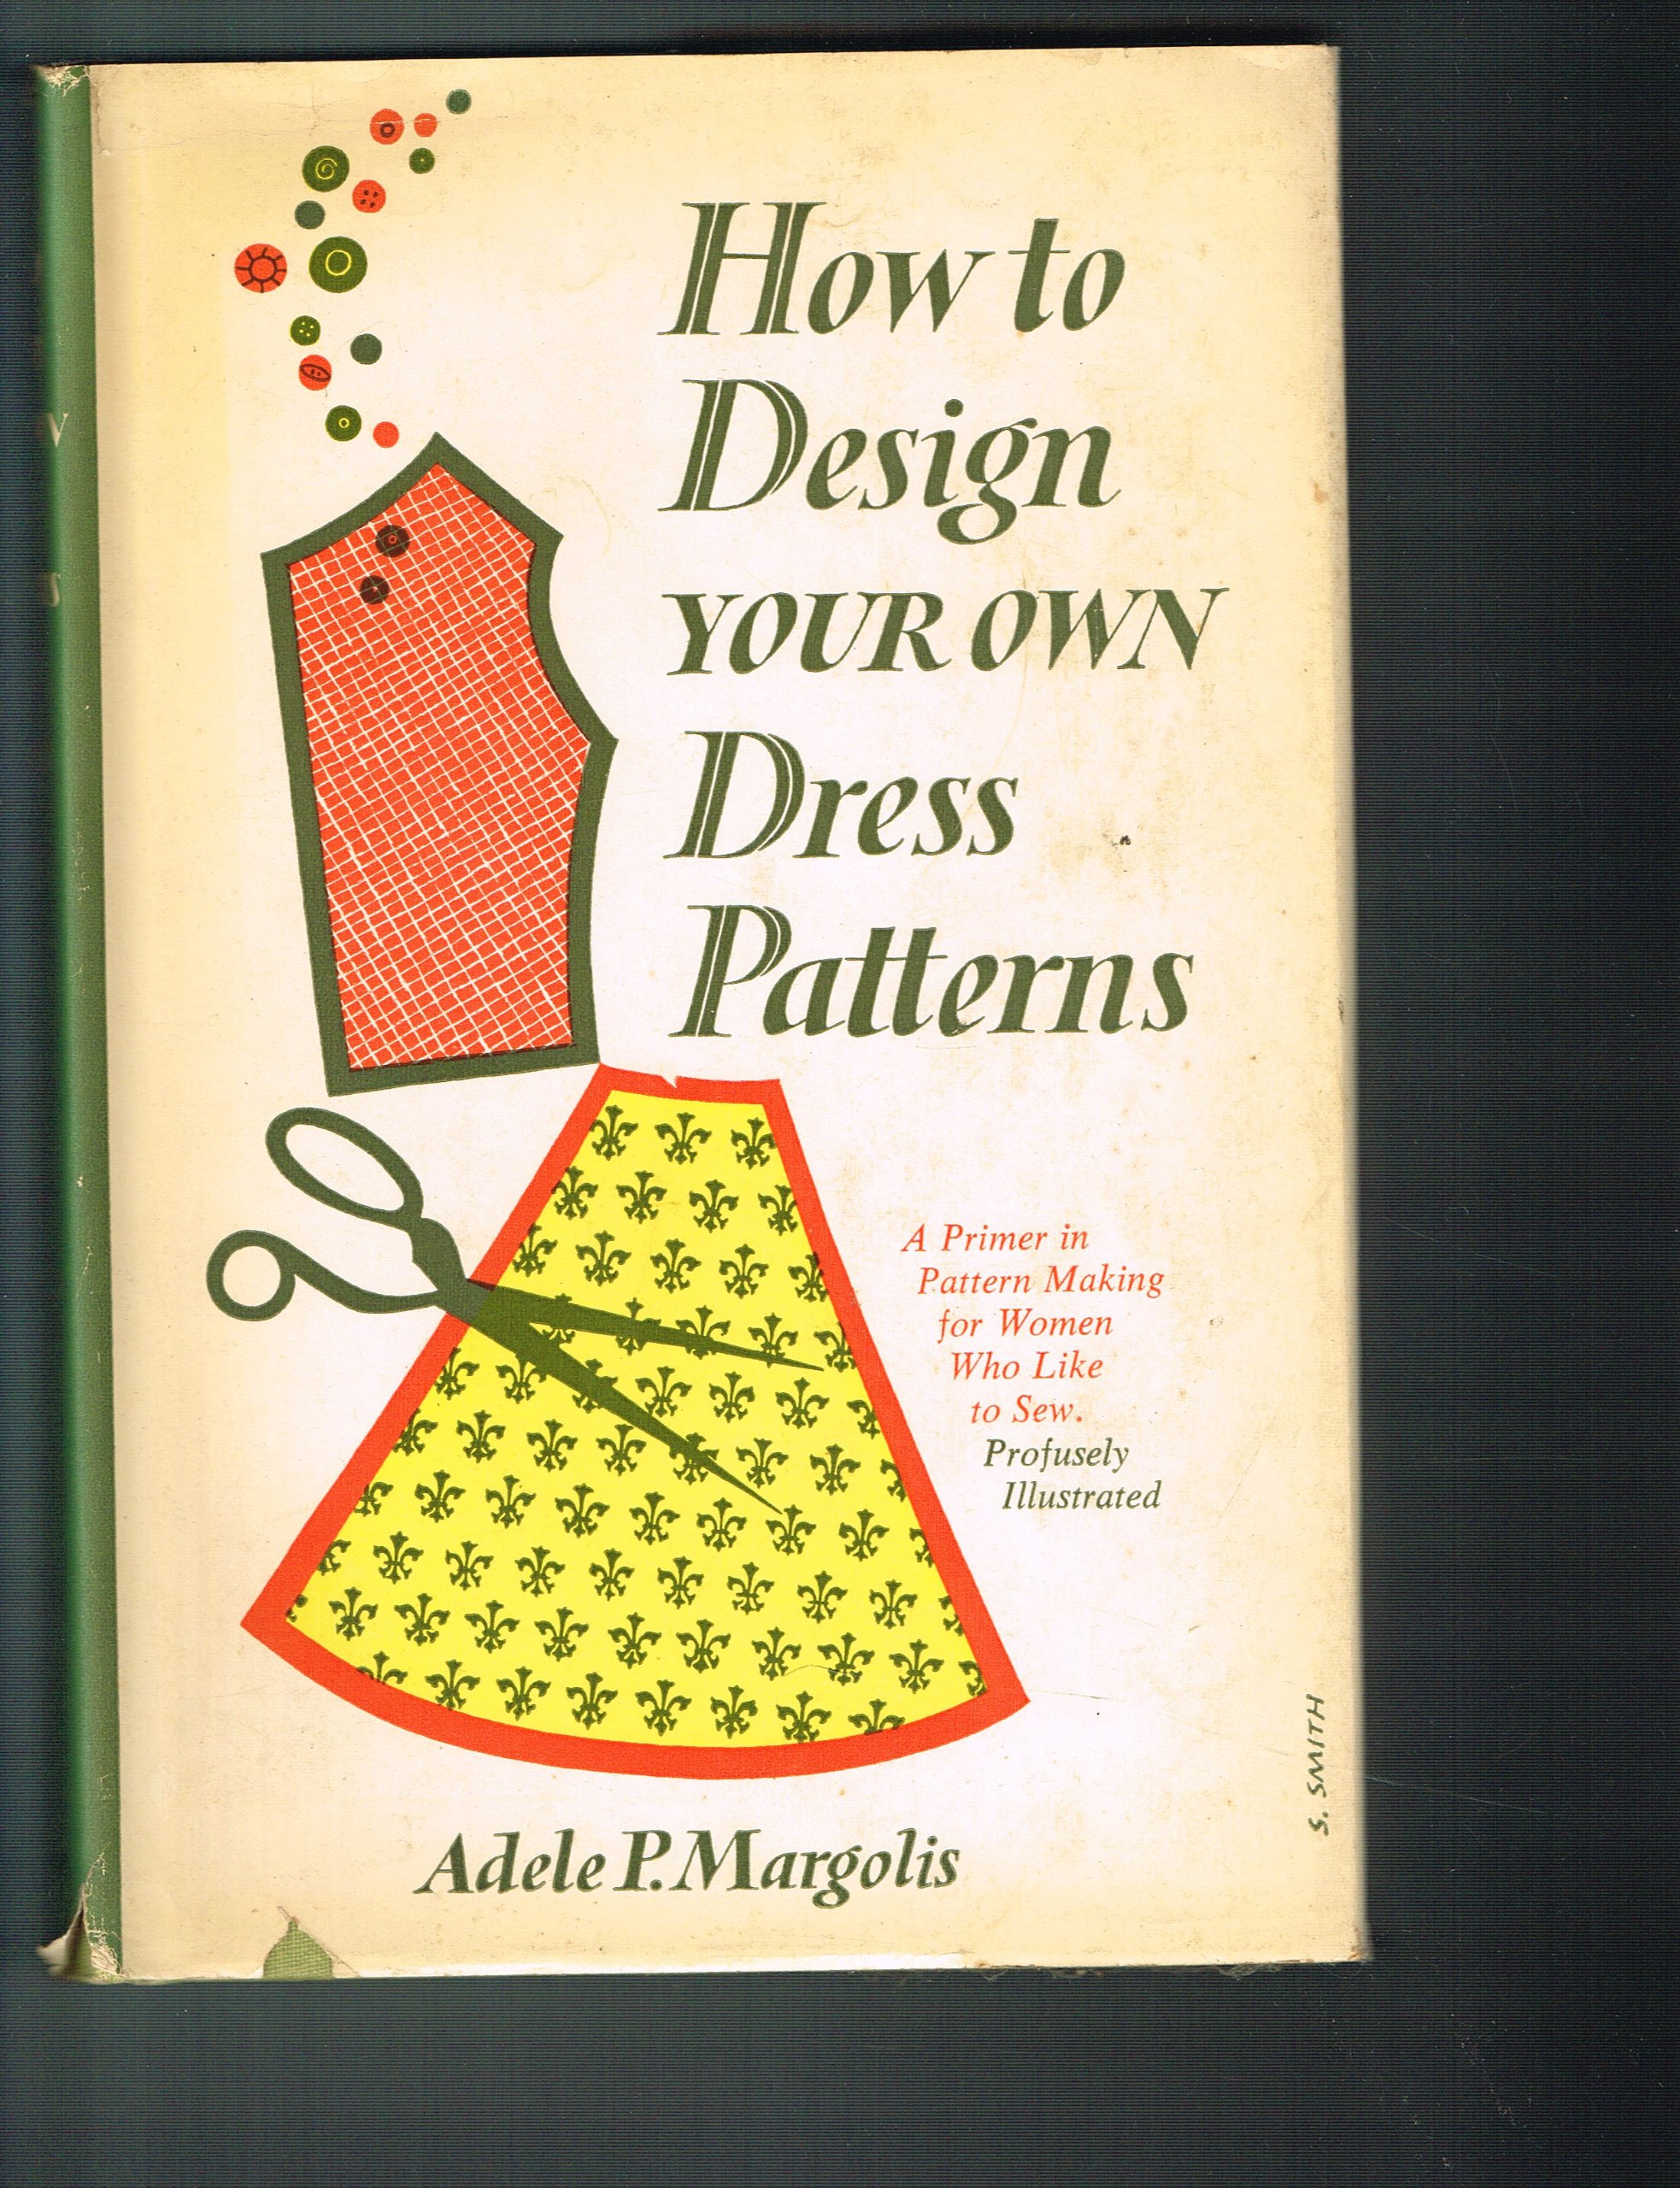 How To Design Your Own Dress Patterns Adele P Margolis Nathan